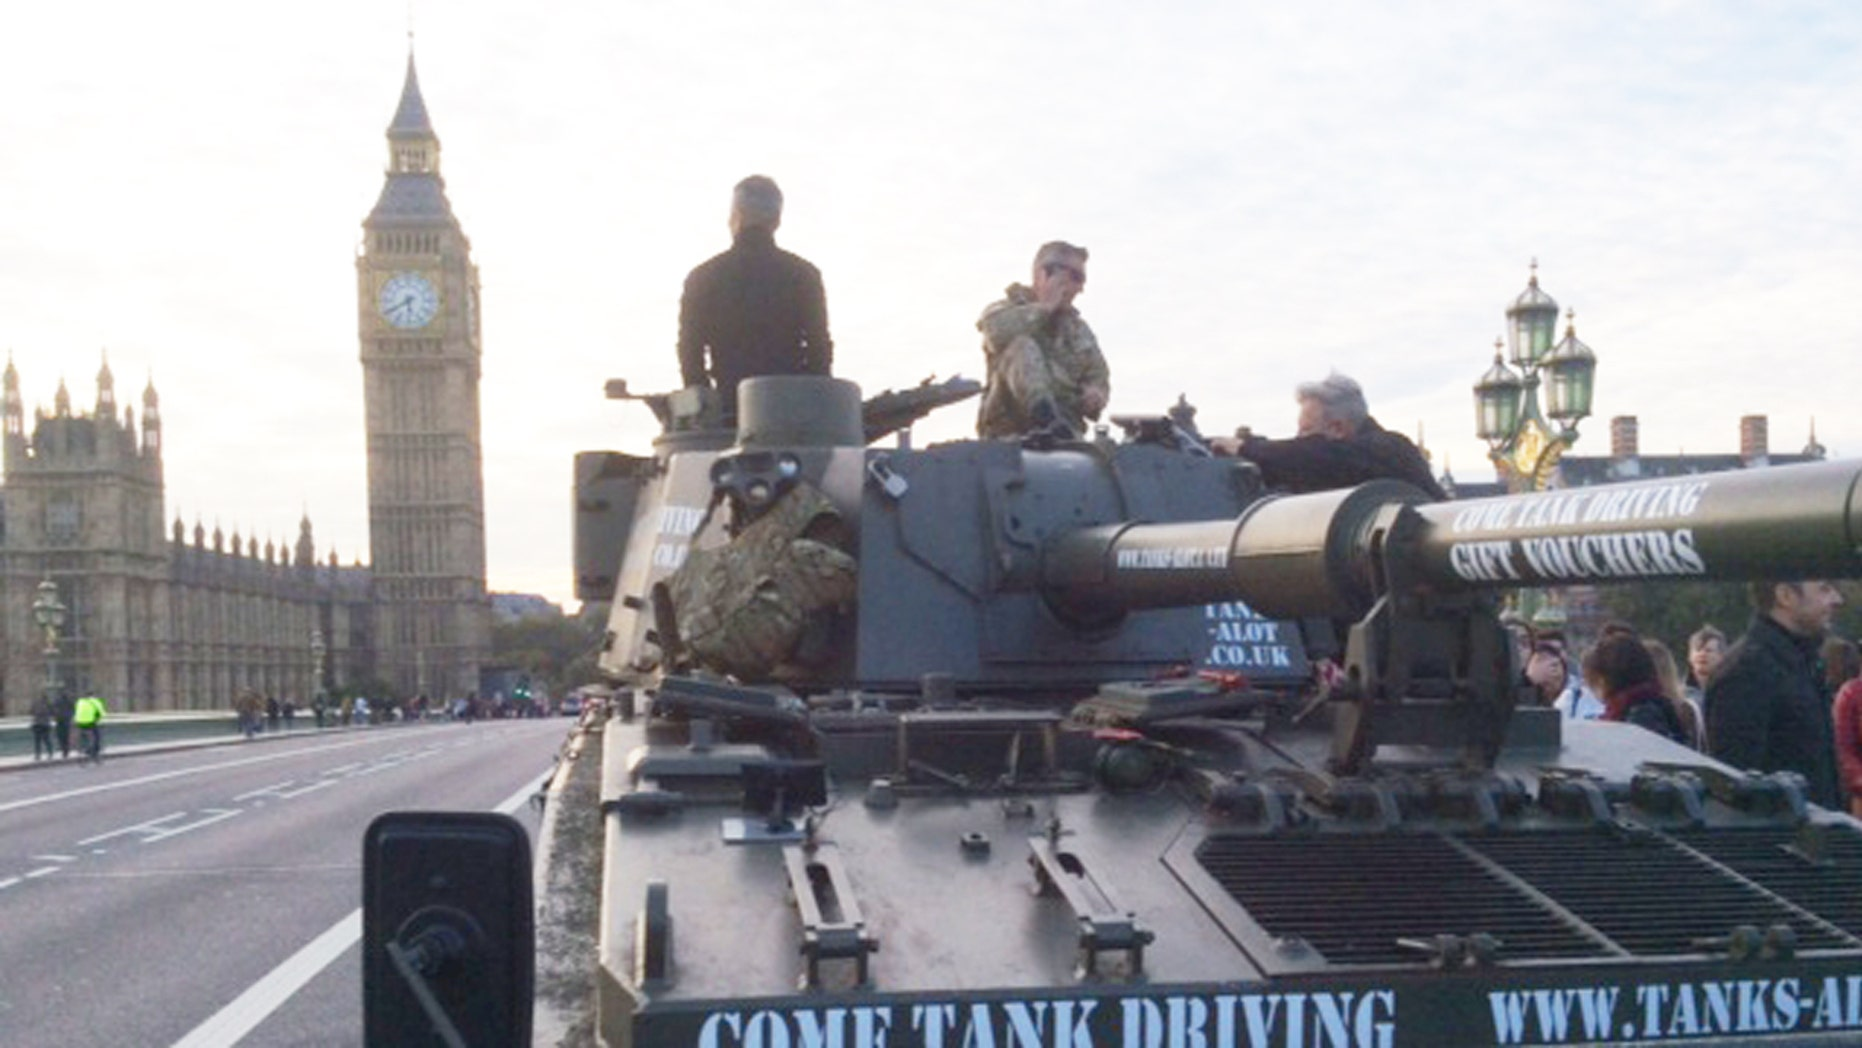 Cruise past Big Ben in decommissioned military tank.